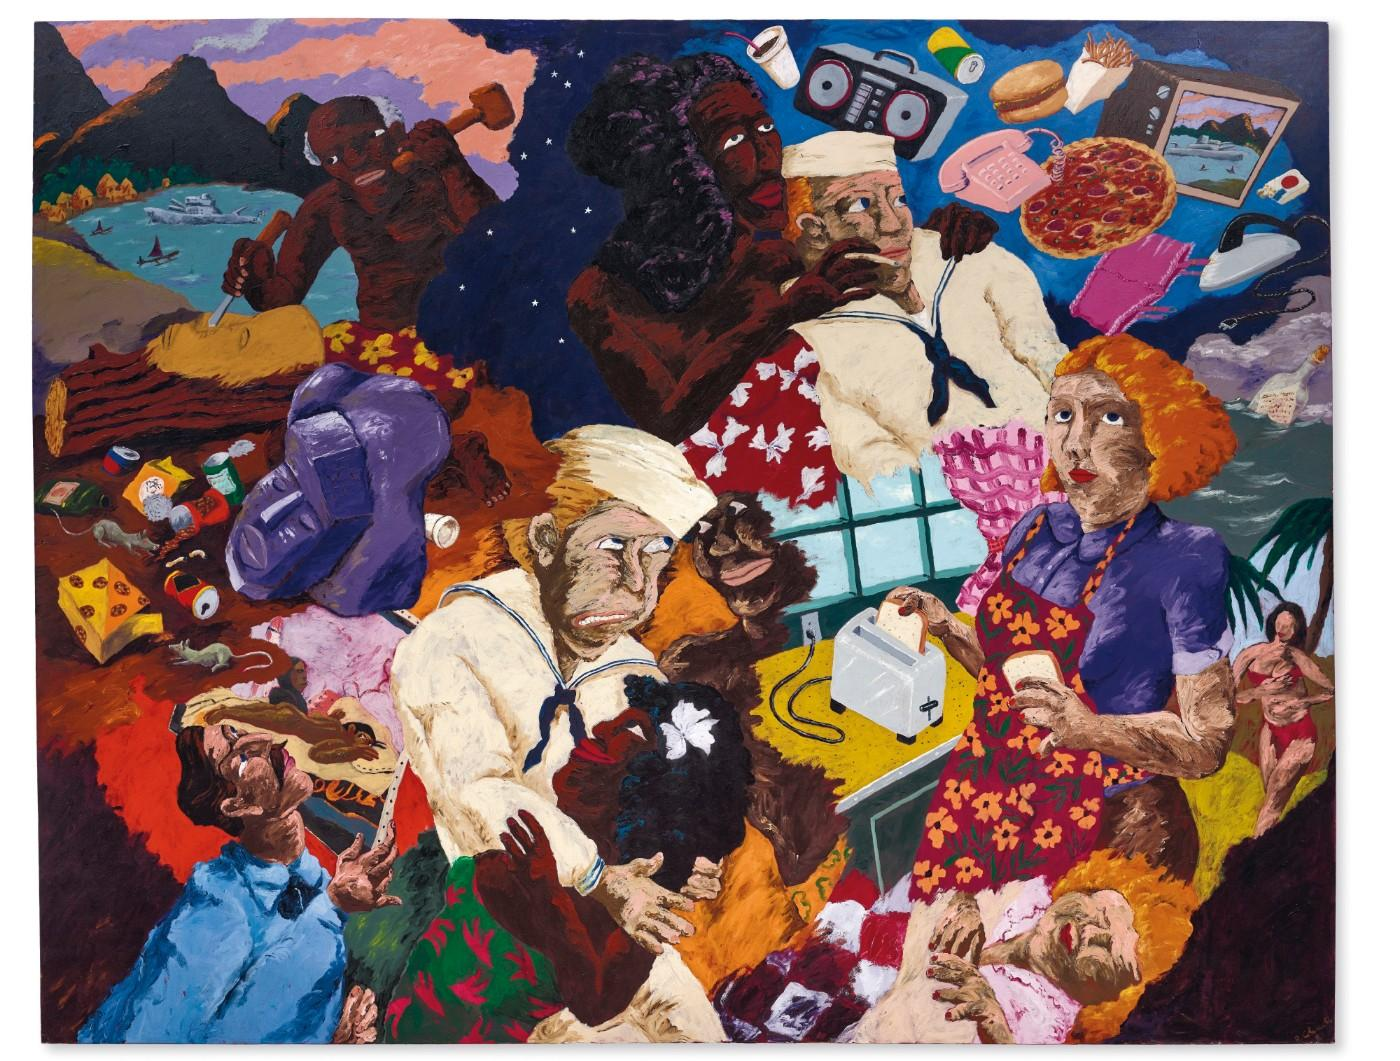 Robert Colescott, Cultural Exchange, 1987